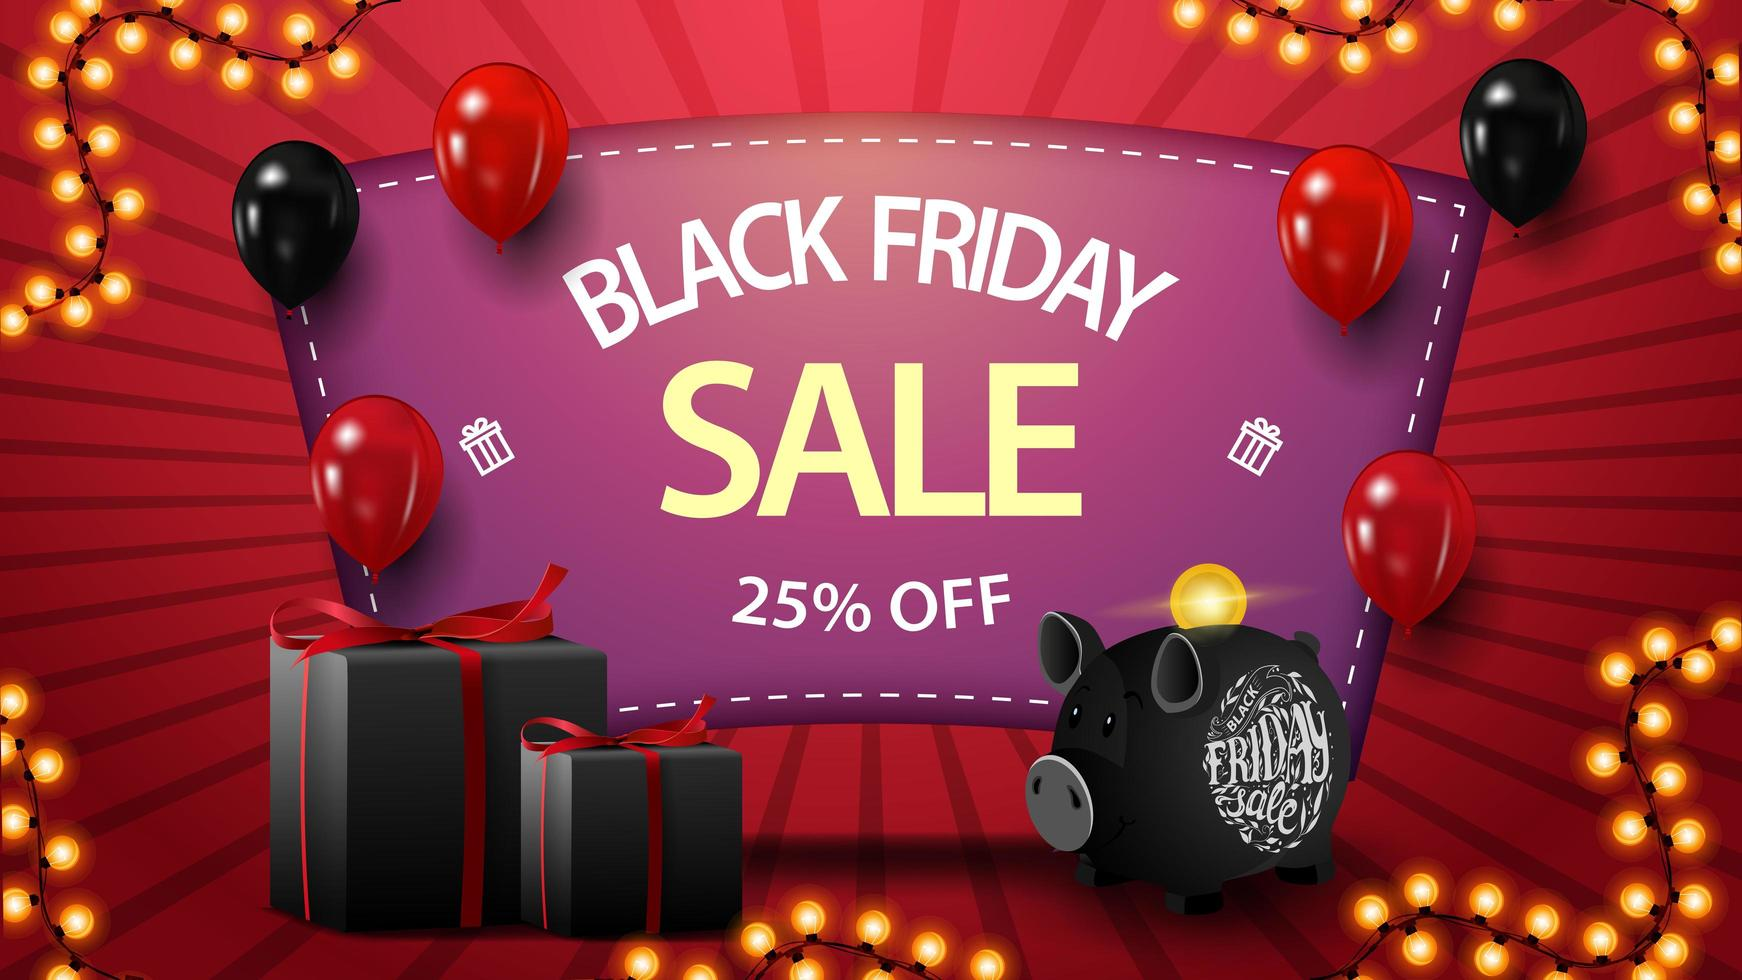 Black Friday sale, up to 25 off, discount pink banner with gifts, piggy bank and balloons vector